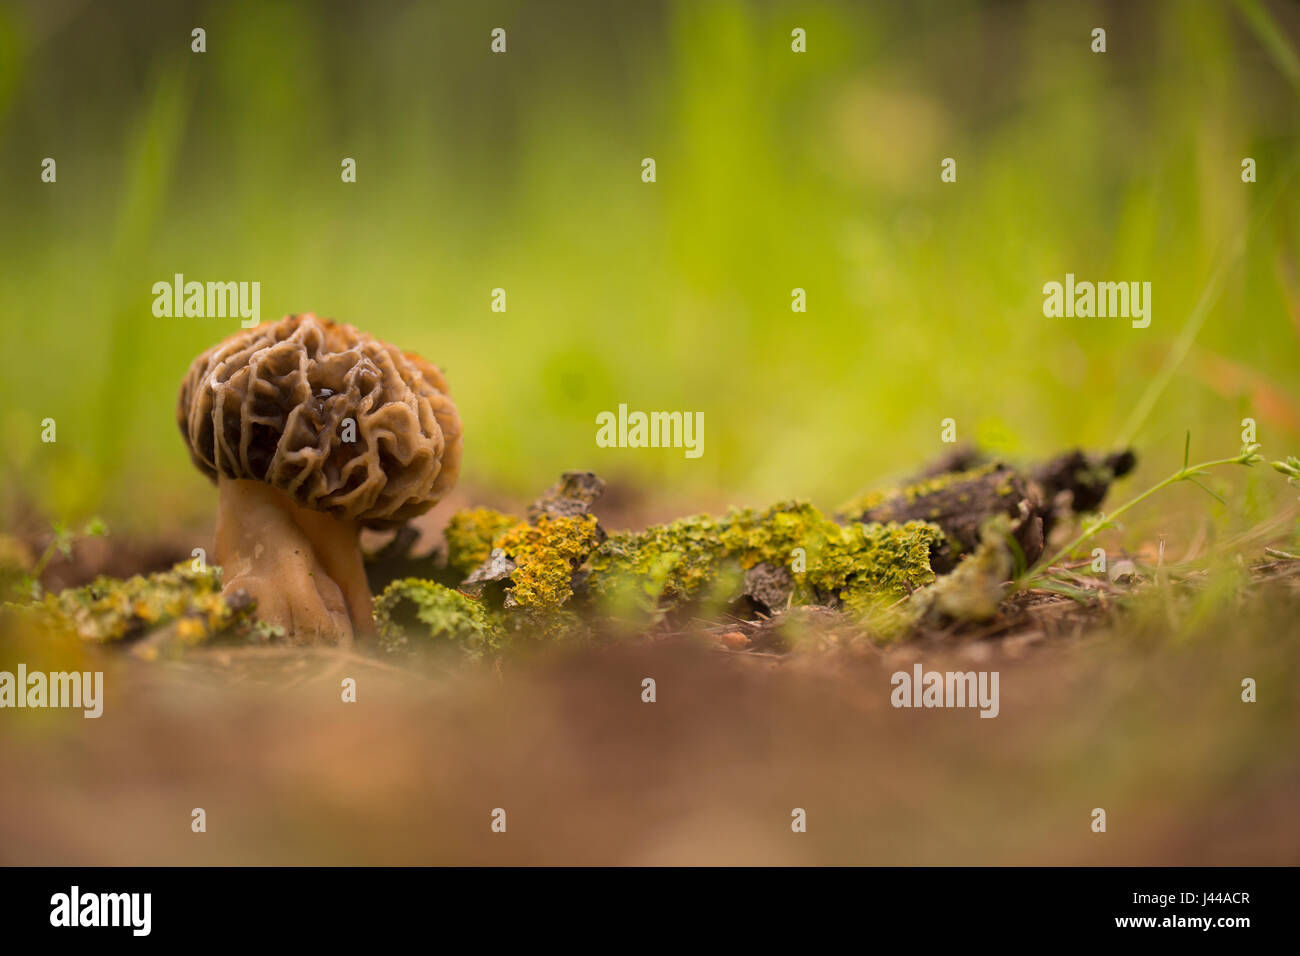 Morel mushroom (Morchella conica) growing in soil. These mushrooms are the fruiting bodies of this fungus and can reach several centimetres in height. Stock Photo